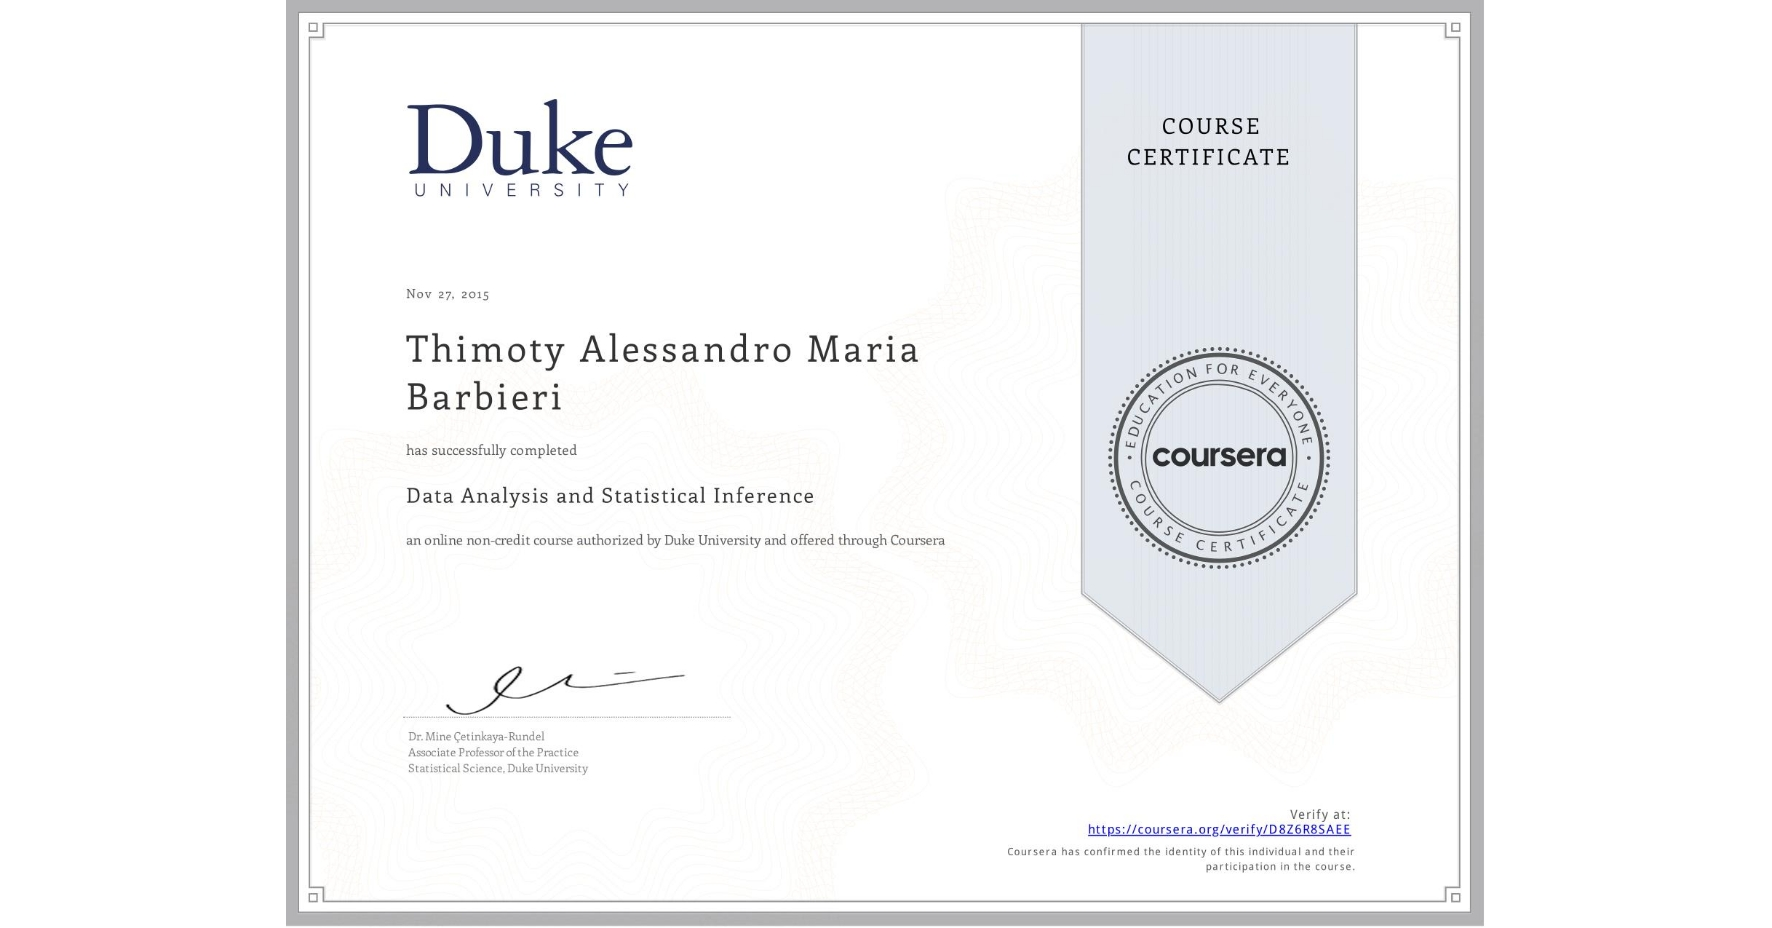 View certificate for Thimoty Alessandro Maria Barbieri, Data Analysis and Statistical Inference , an online non-credit course authorized by Duke University and offered through Coursera